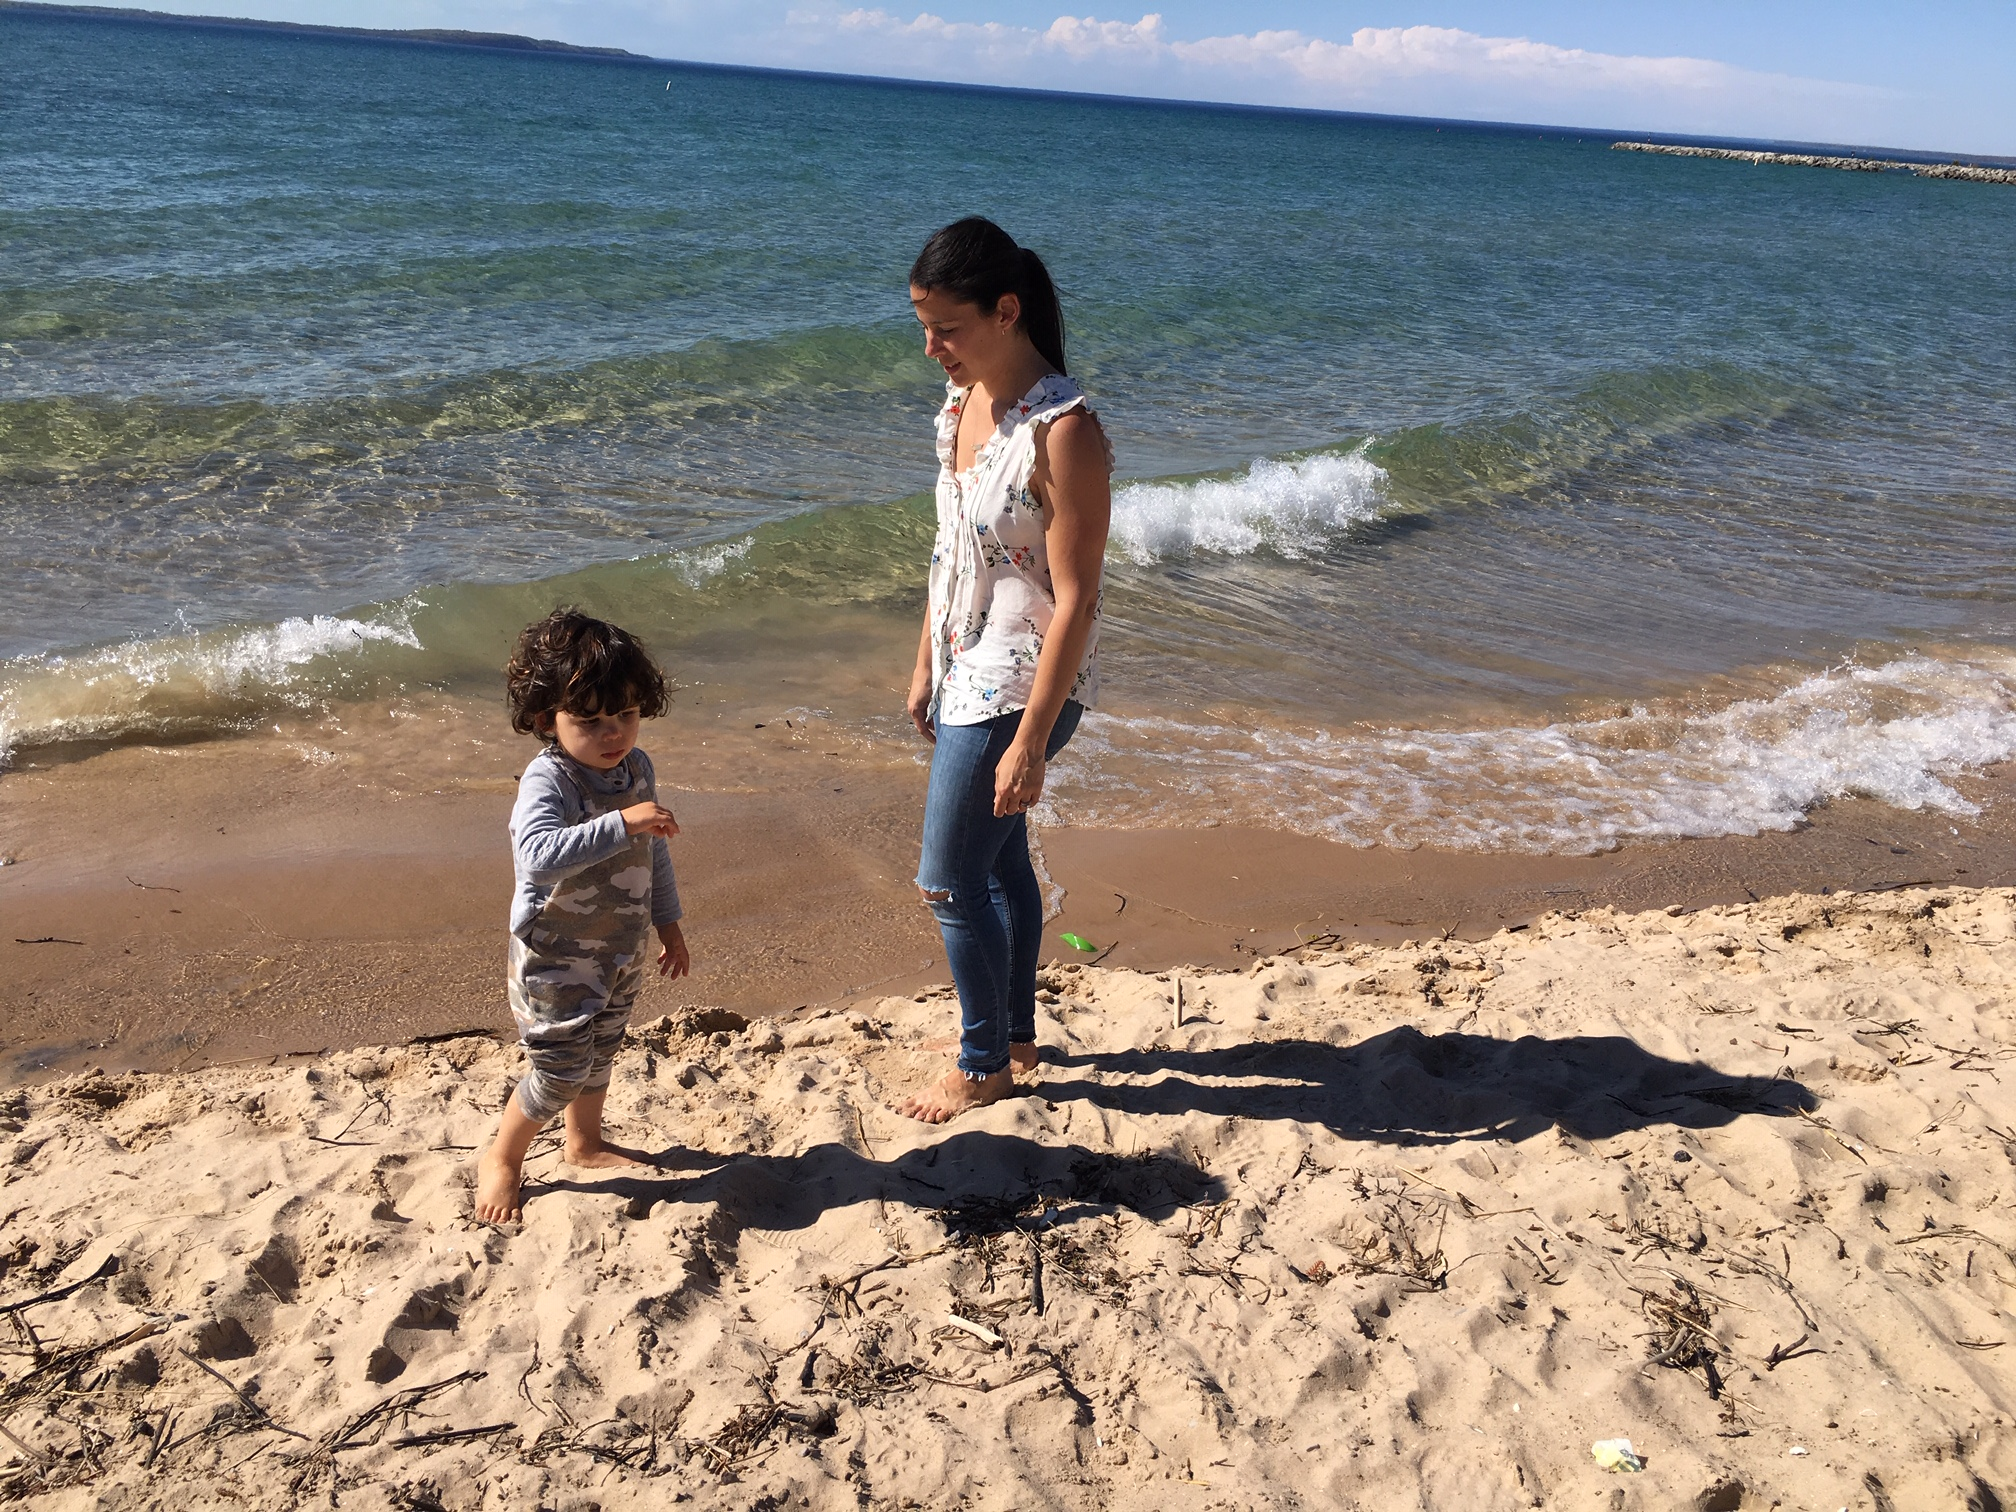 Stretch your legs:  Sarah and Kitson take a car break on the shores of Lake Michigan in Traverse City.